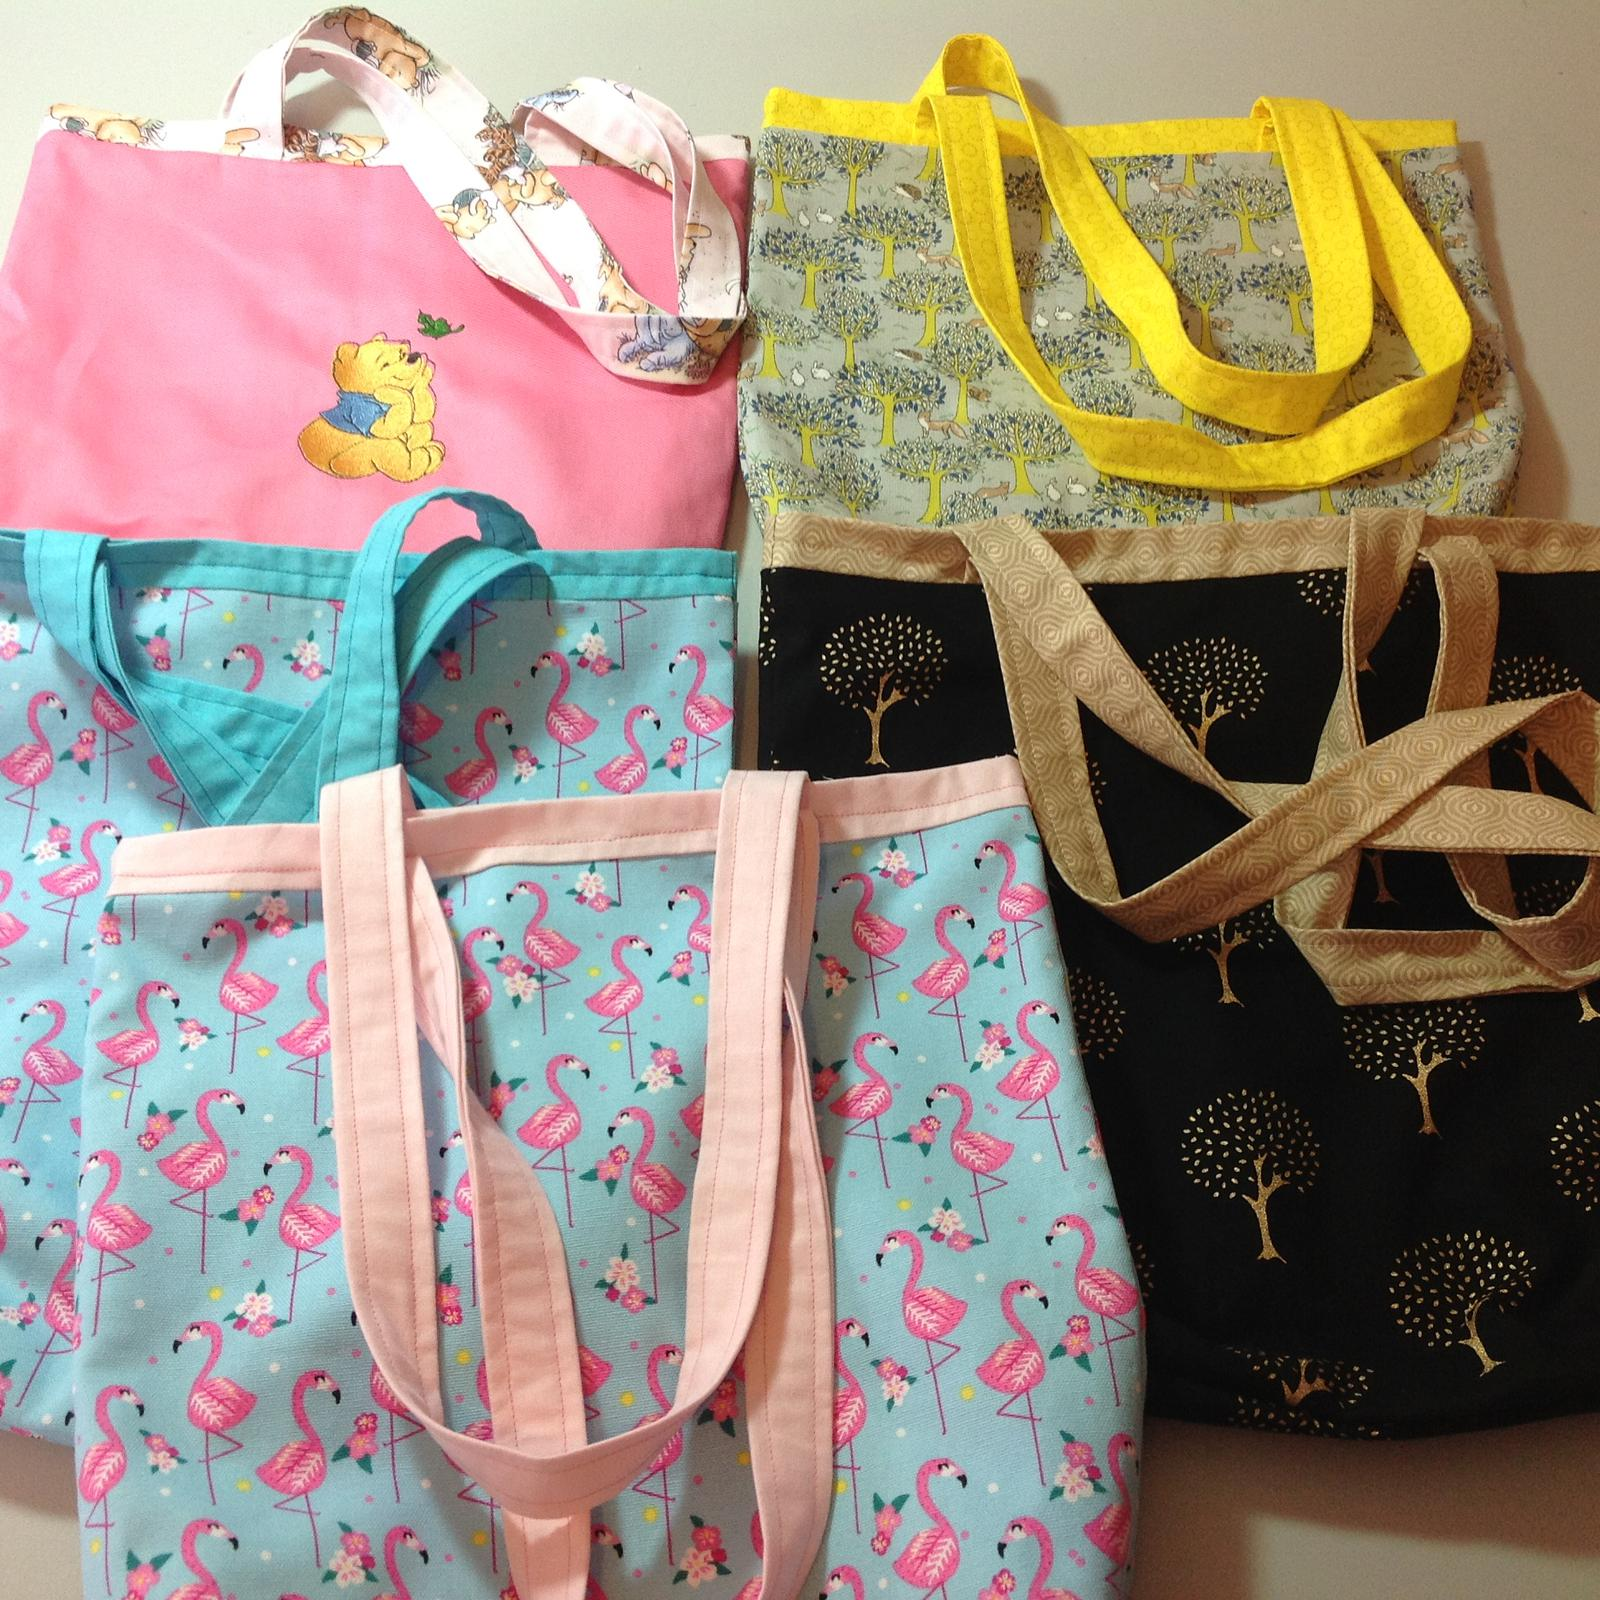 Children's and adult tote bags